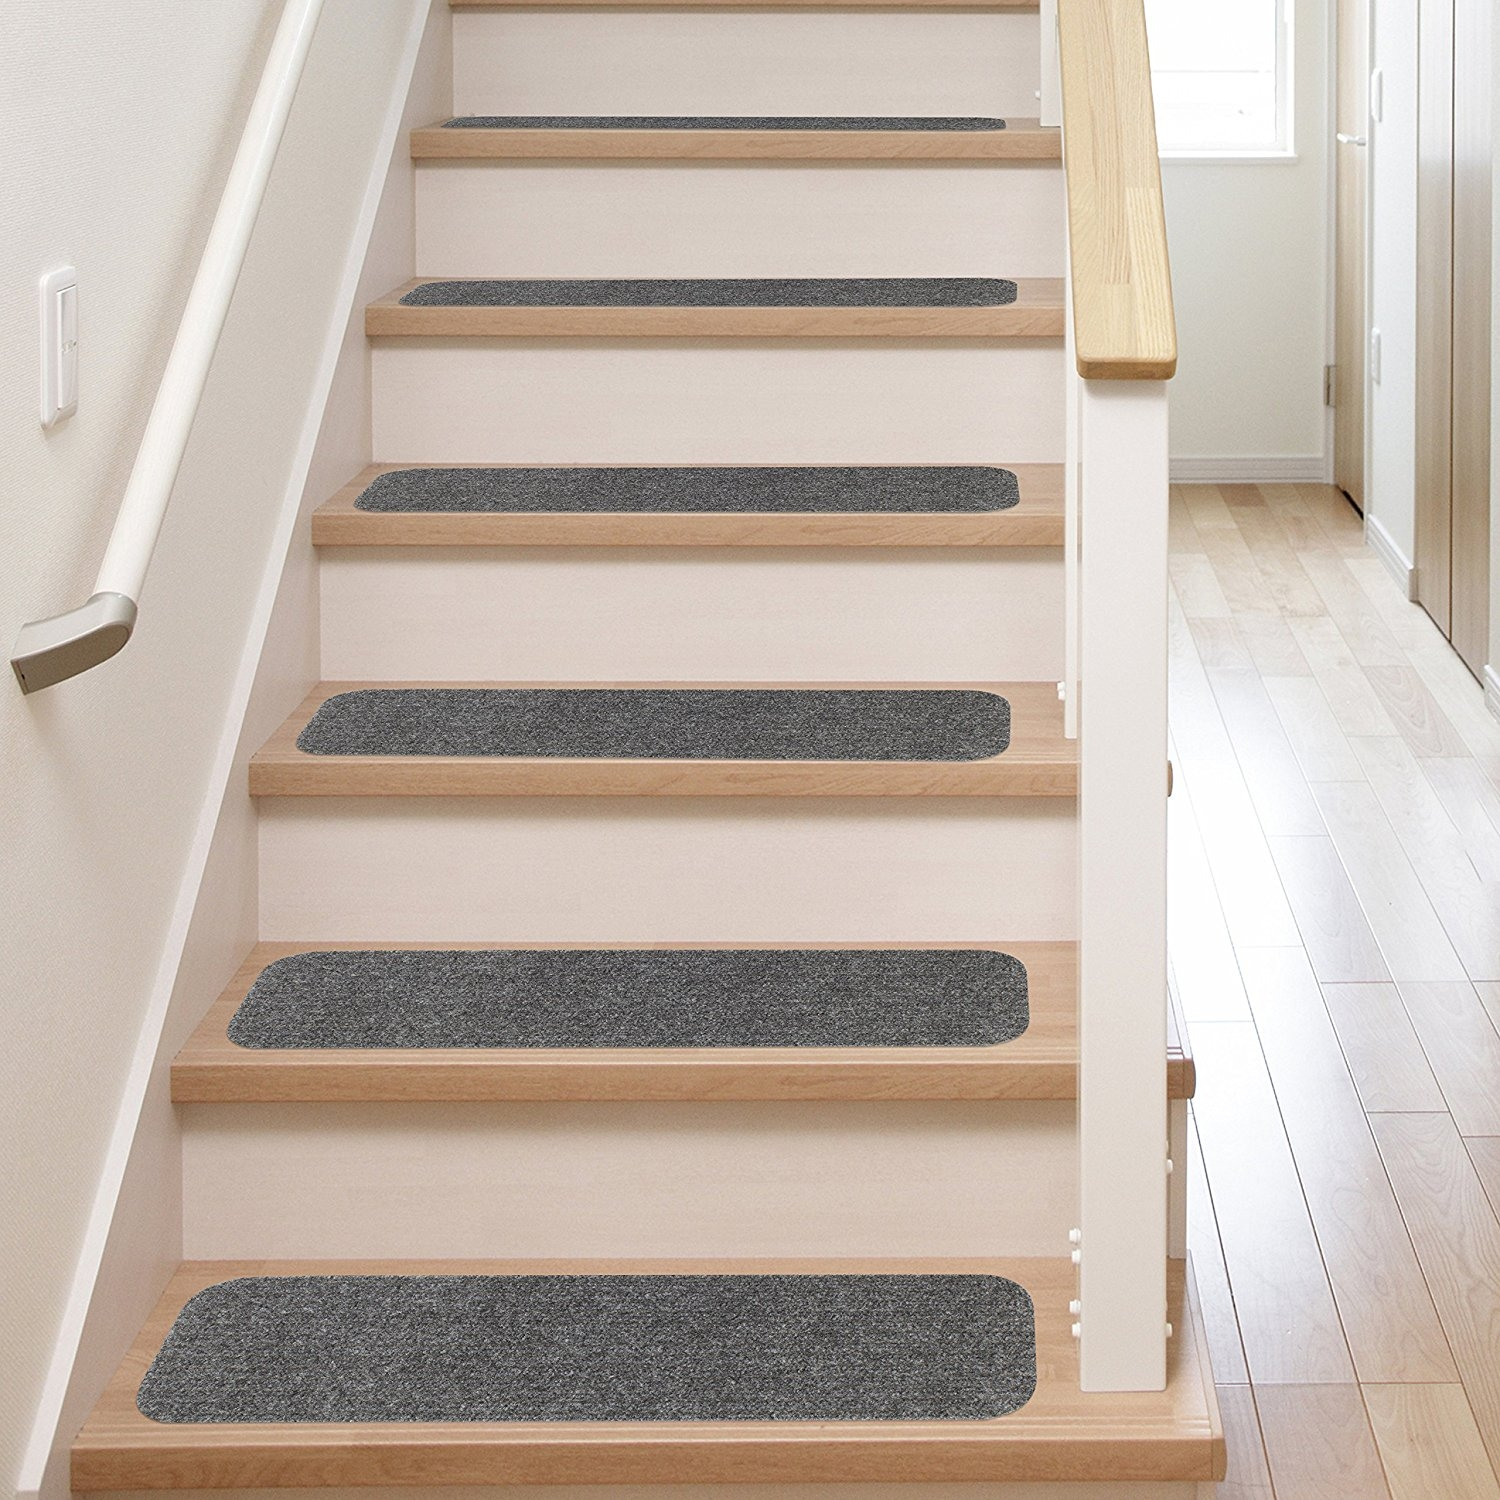 13 Stair Treads Non Slip Carpet Pads Easy Tape Installation With Regard To Skid Resistant Stair Treads (#1 of 20)